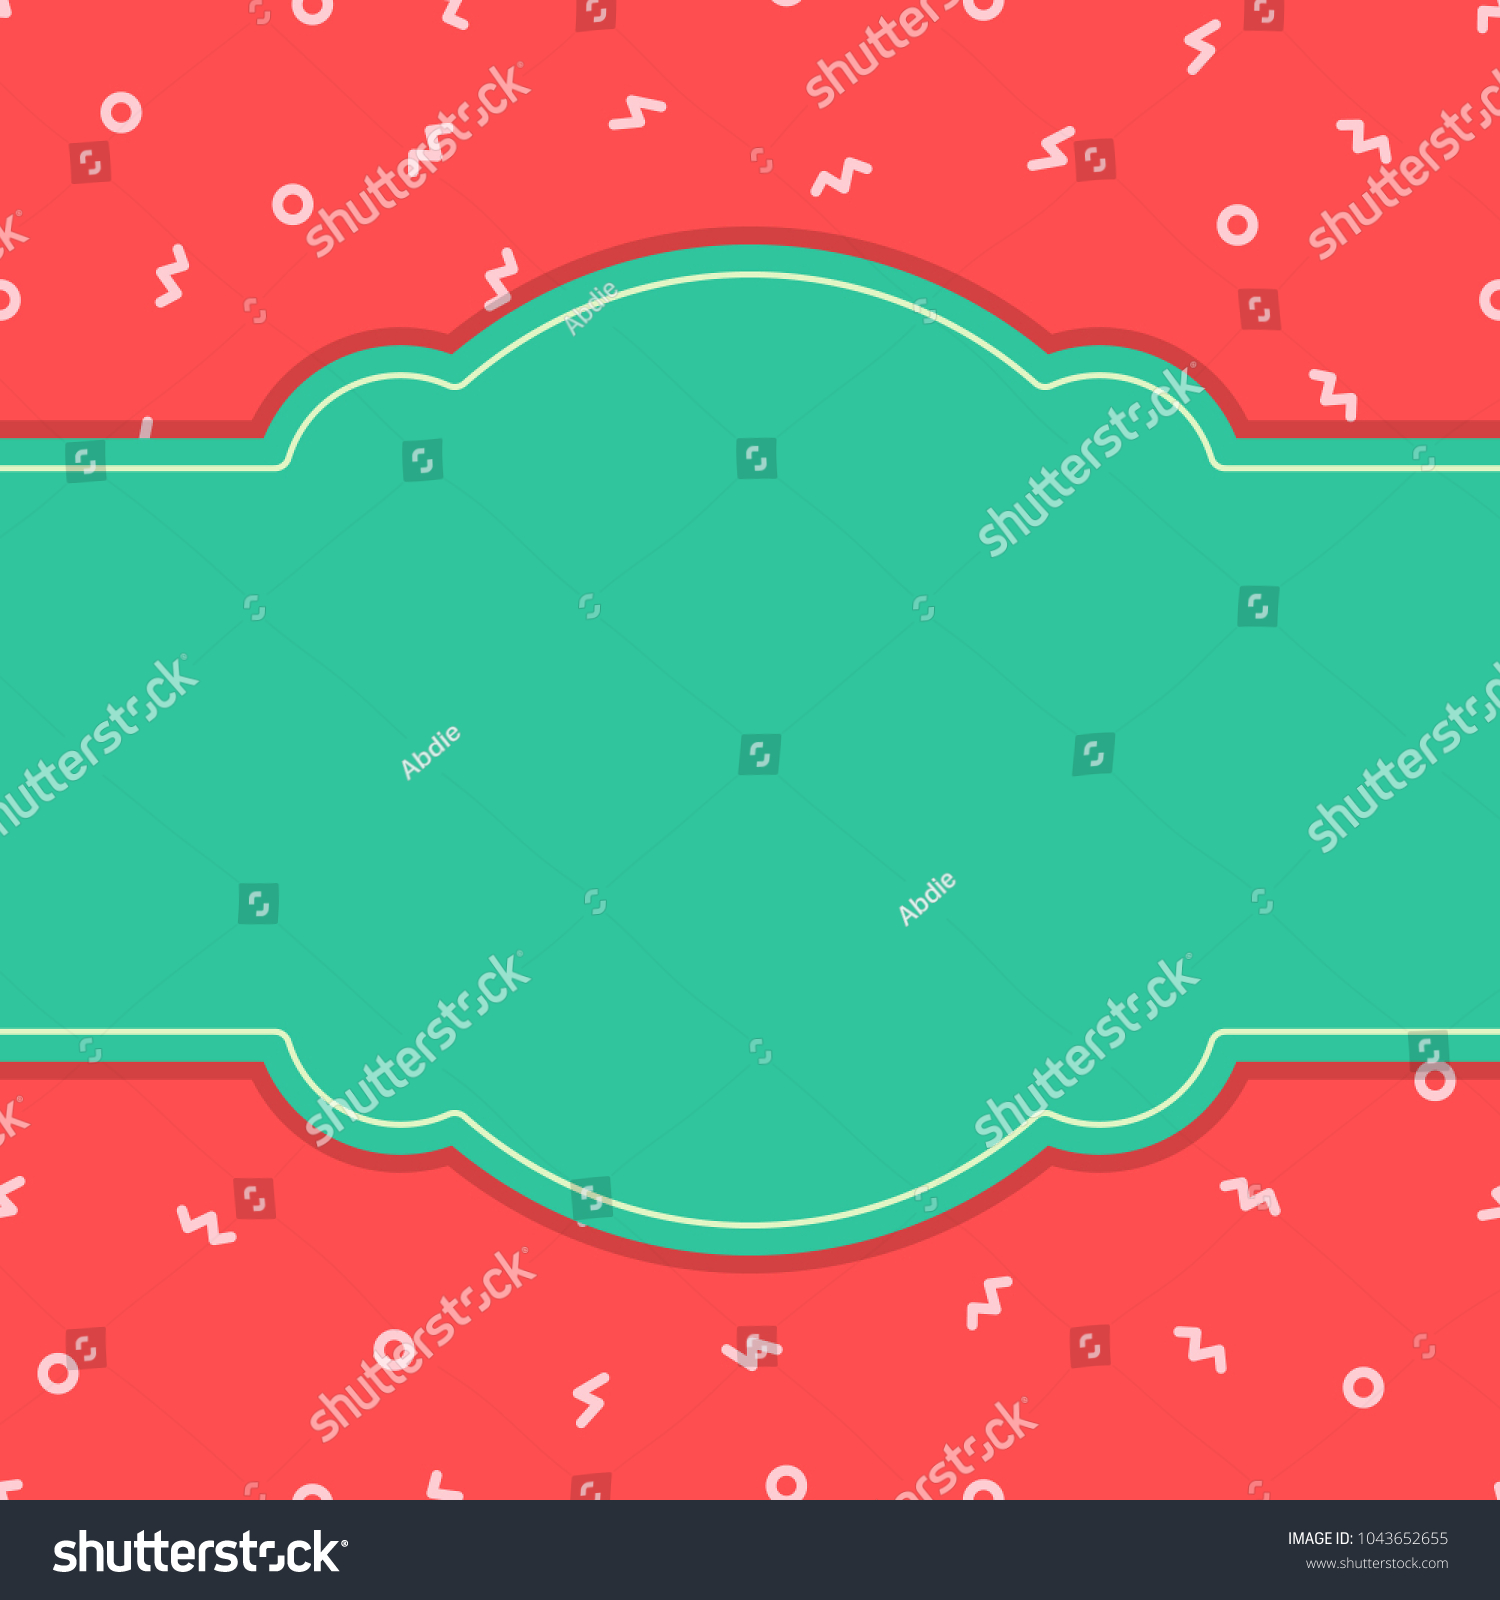 Download 540 Background Pink Tosca Gratis Terbaik